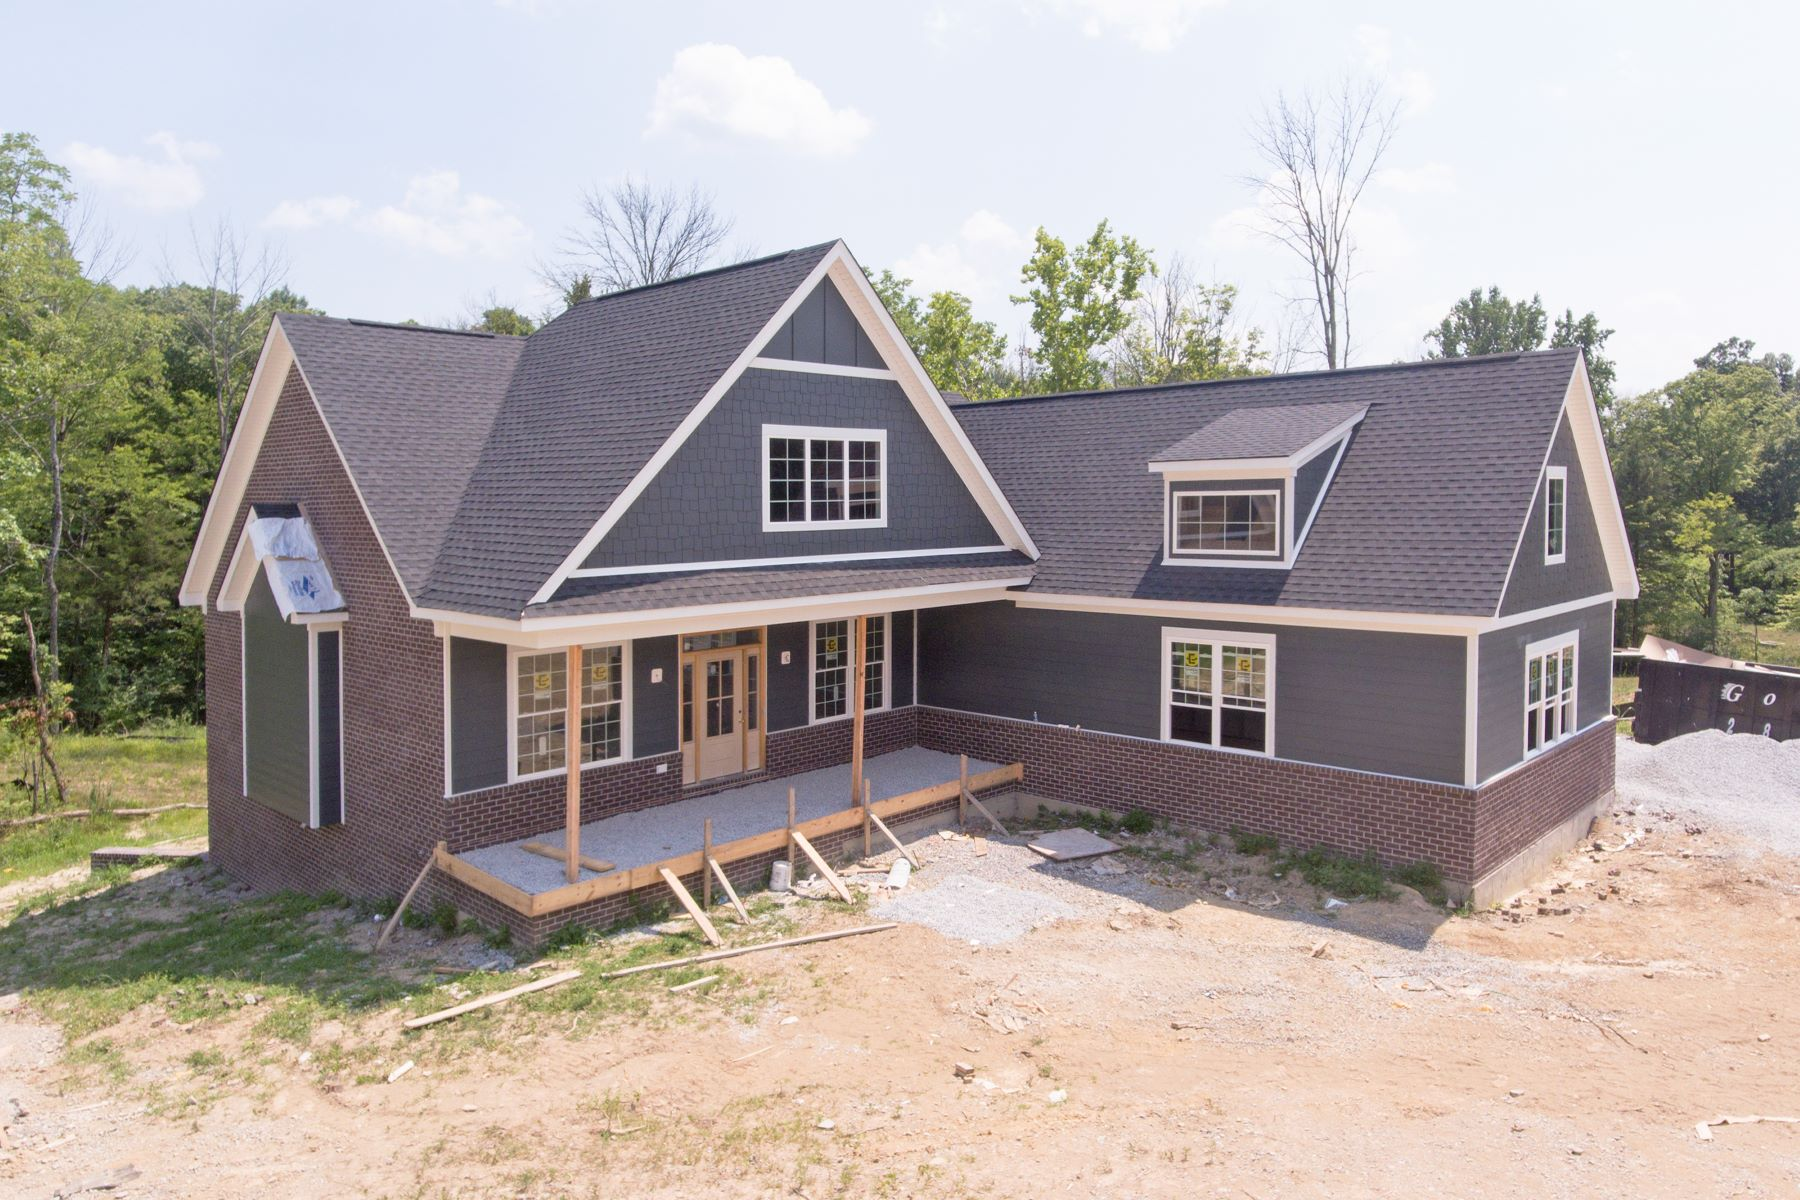 Additional photo for property listing at 17412 Shakes Creek Drive  Fisherville, Kentucky 40023 United States